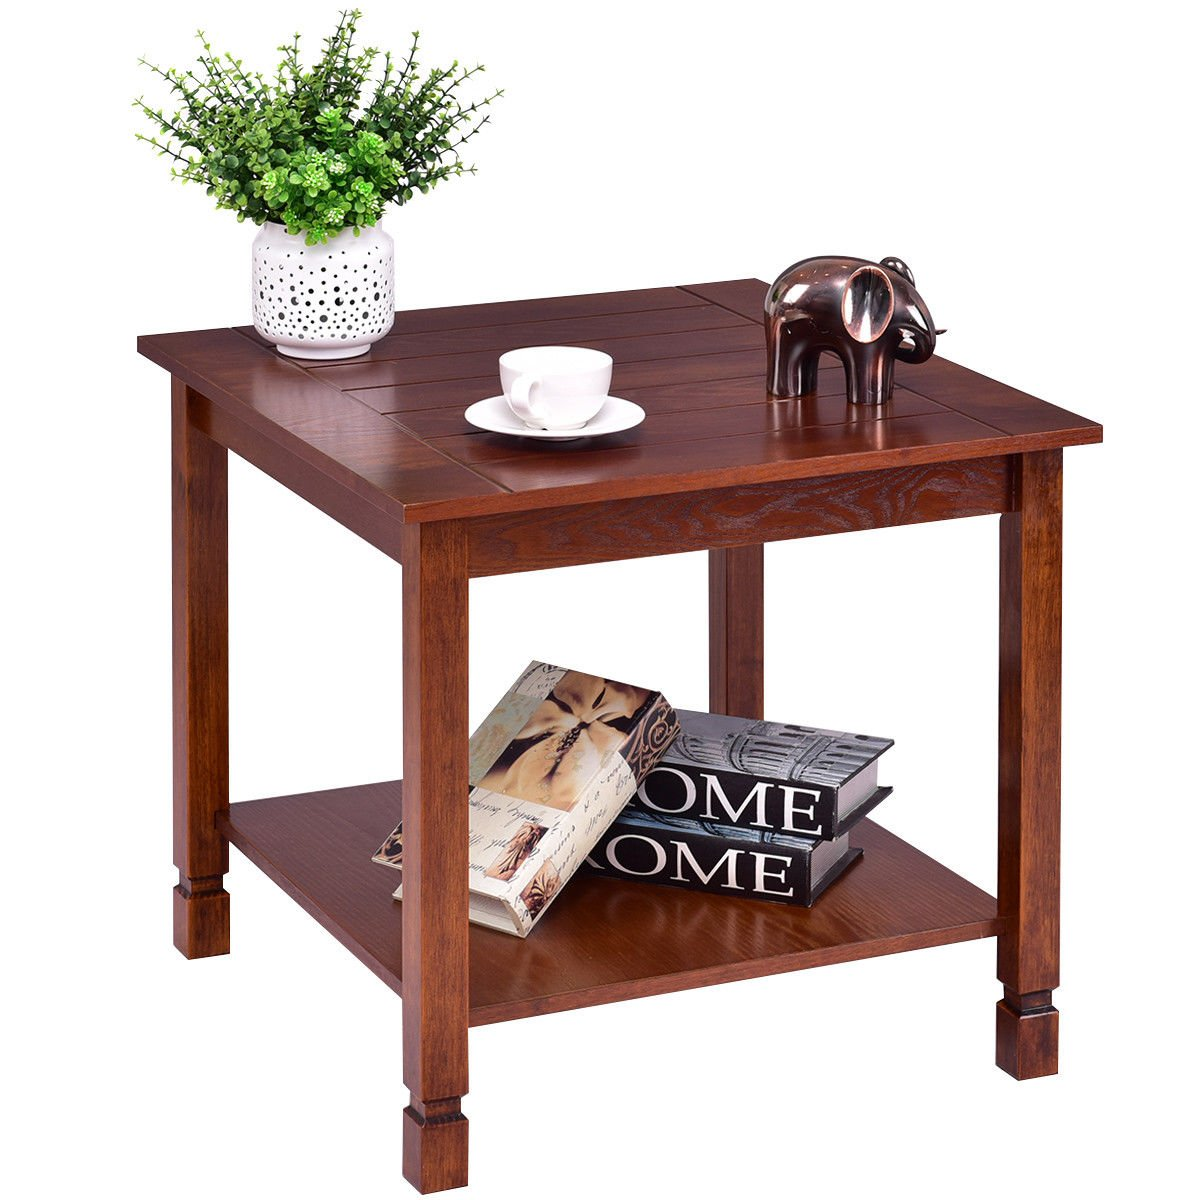 Giantex Pine Wood End Table with Shelf, 2-Tier Side Table with Storage Bedside Sofa Table for Living Room, Bedroom, Solid Sturcture Eco-Friendly Material Espresso Coffee Table Nightstand (Walnut)